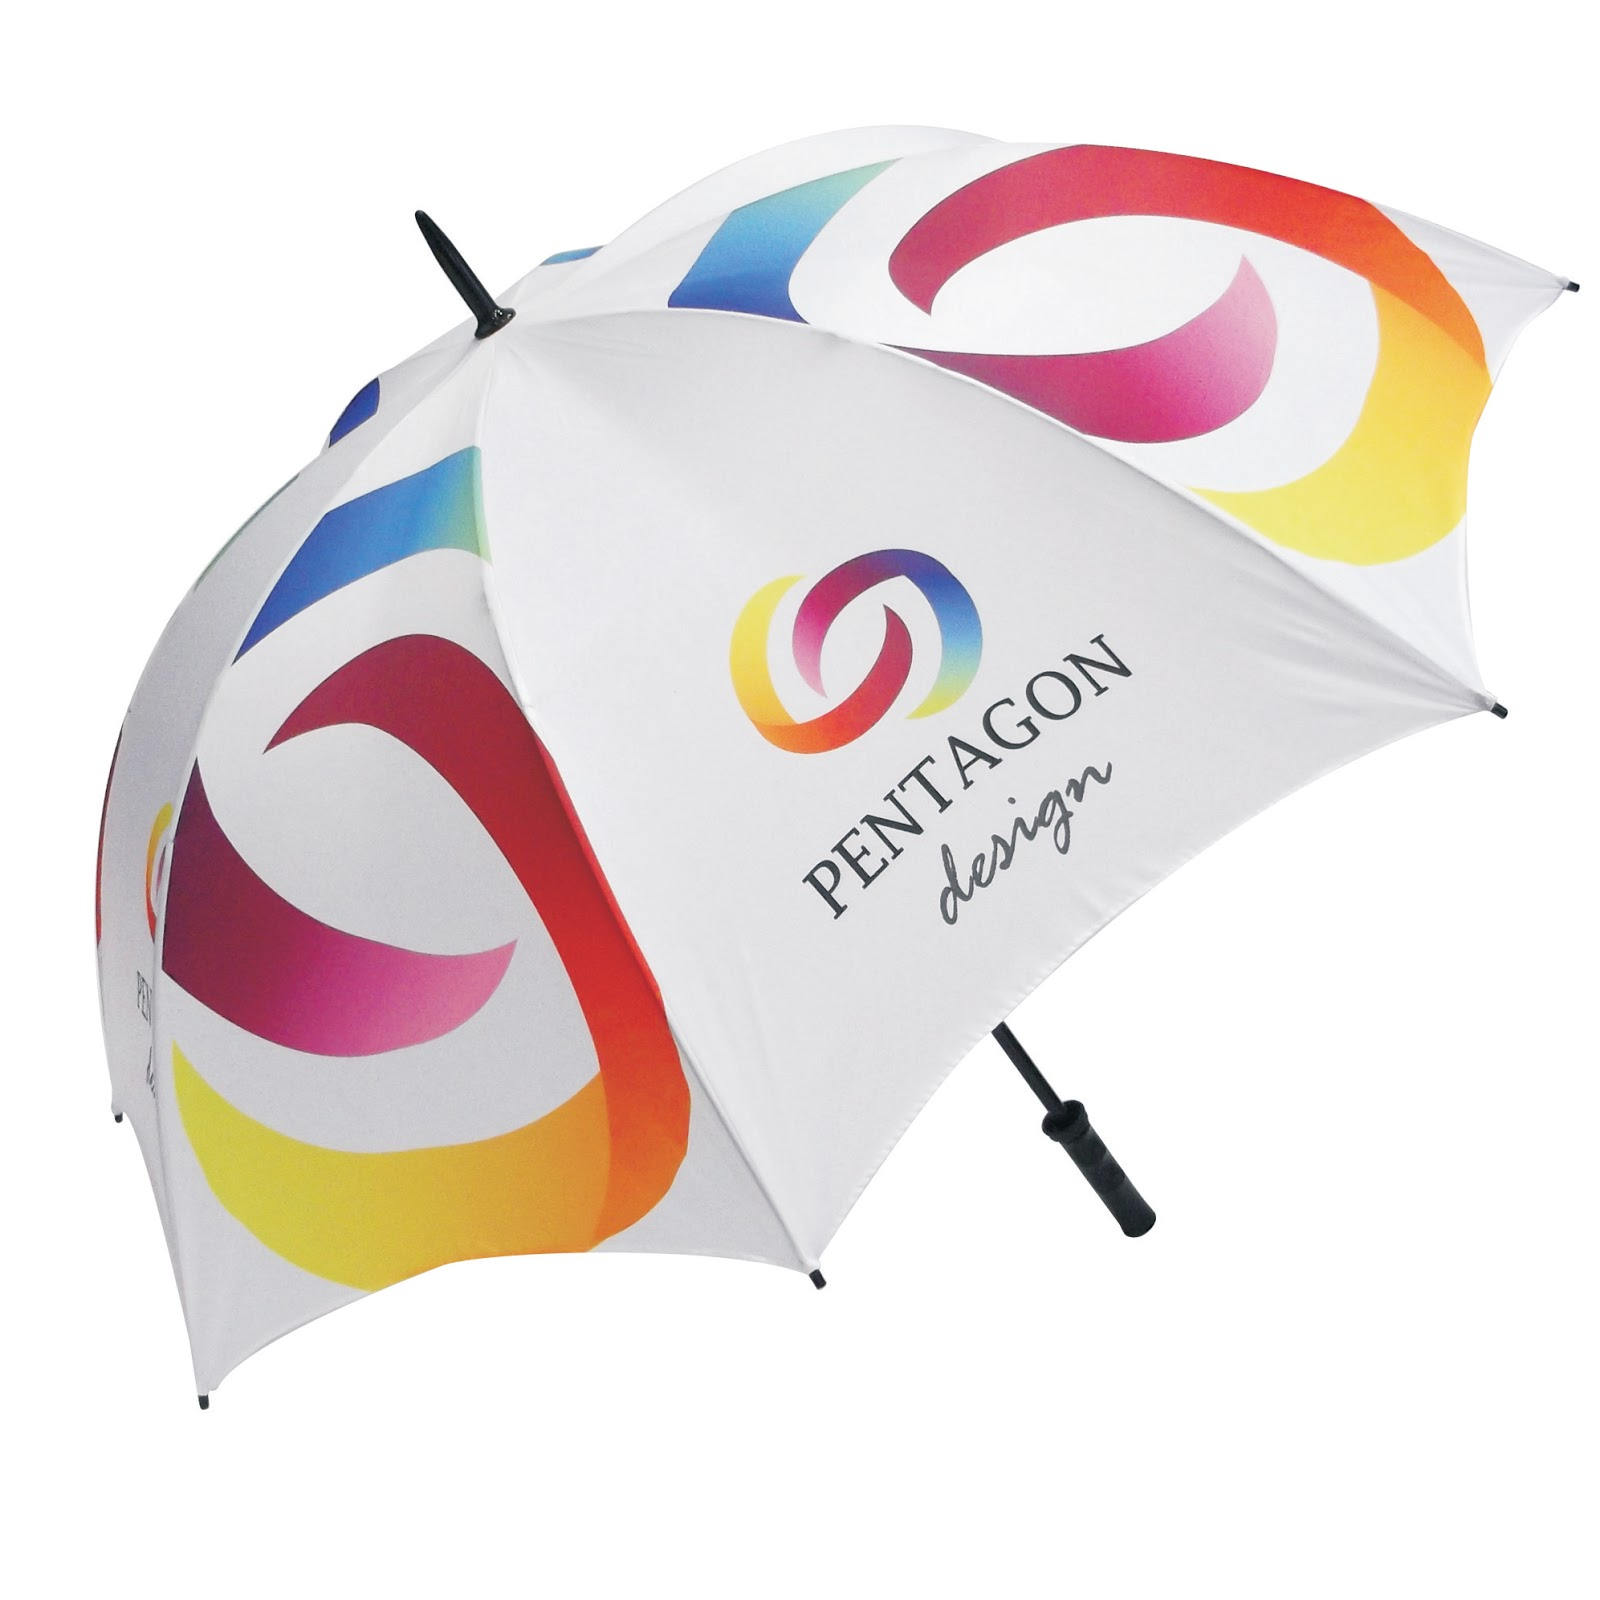 Printed Promotional Sports Umbrellas